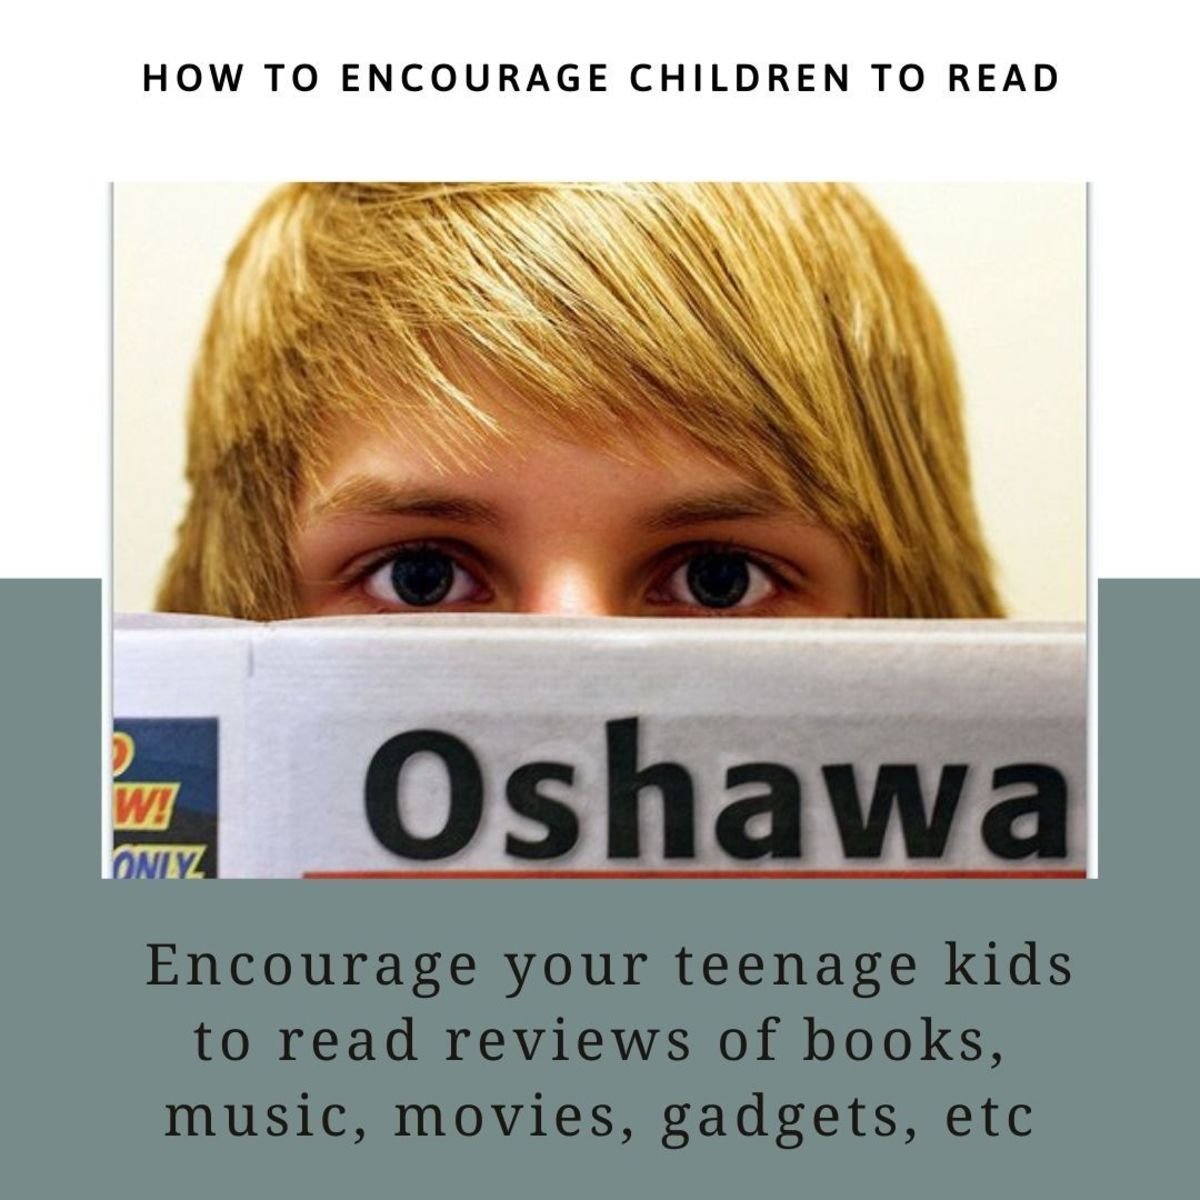 Get your teens to read reviews is another great way to encourage reading amongst teens